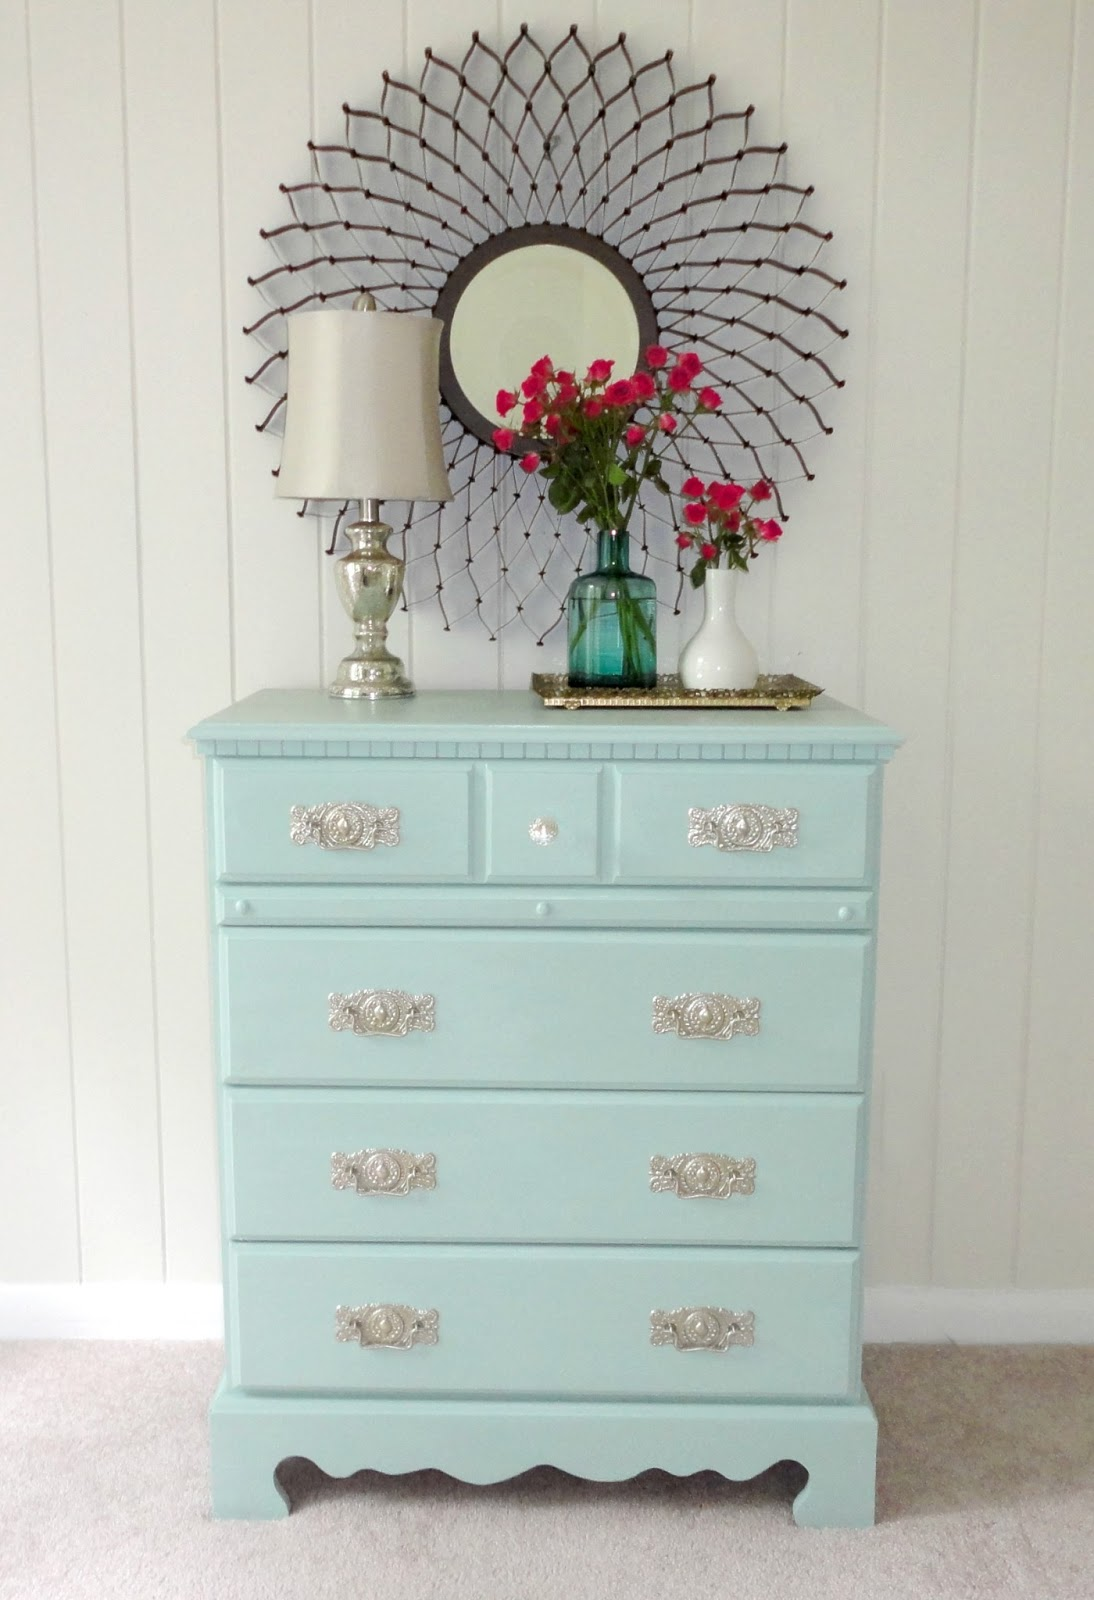 Livelovediy how to paint laminate furniture in 3 easy steps Images of painted furniture